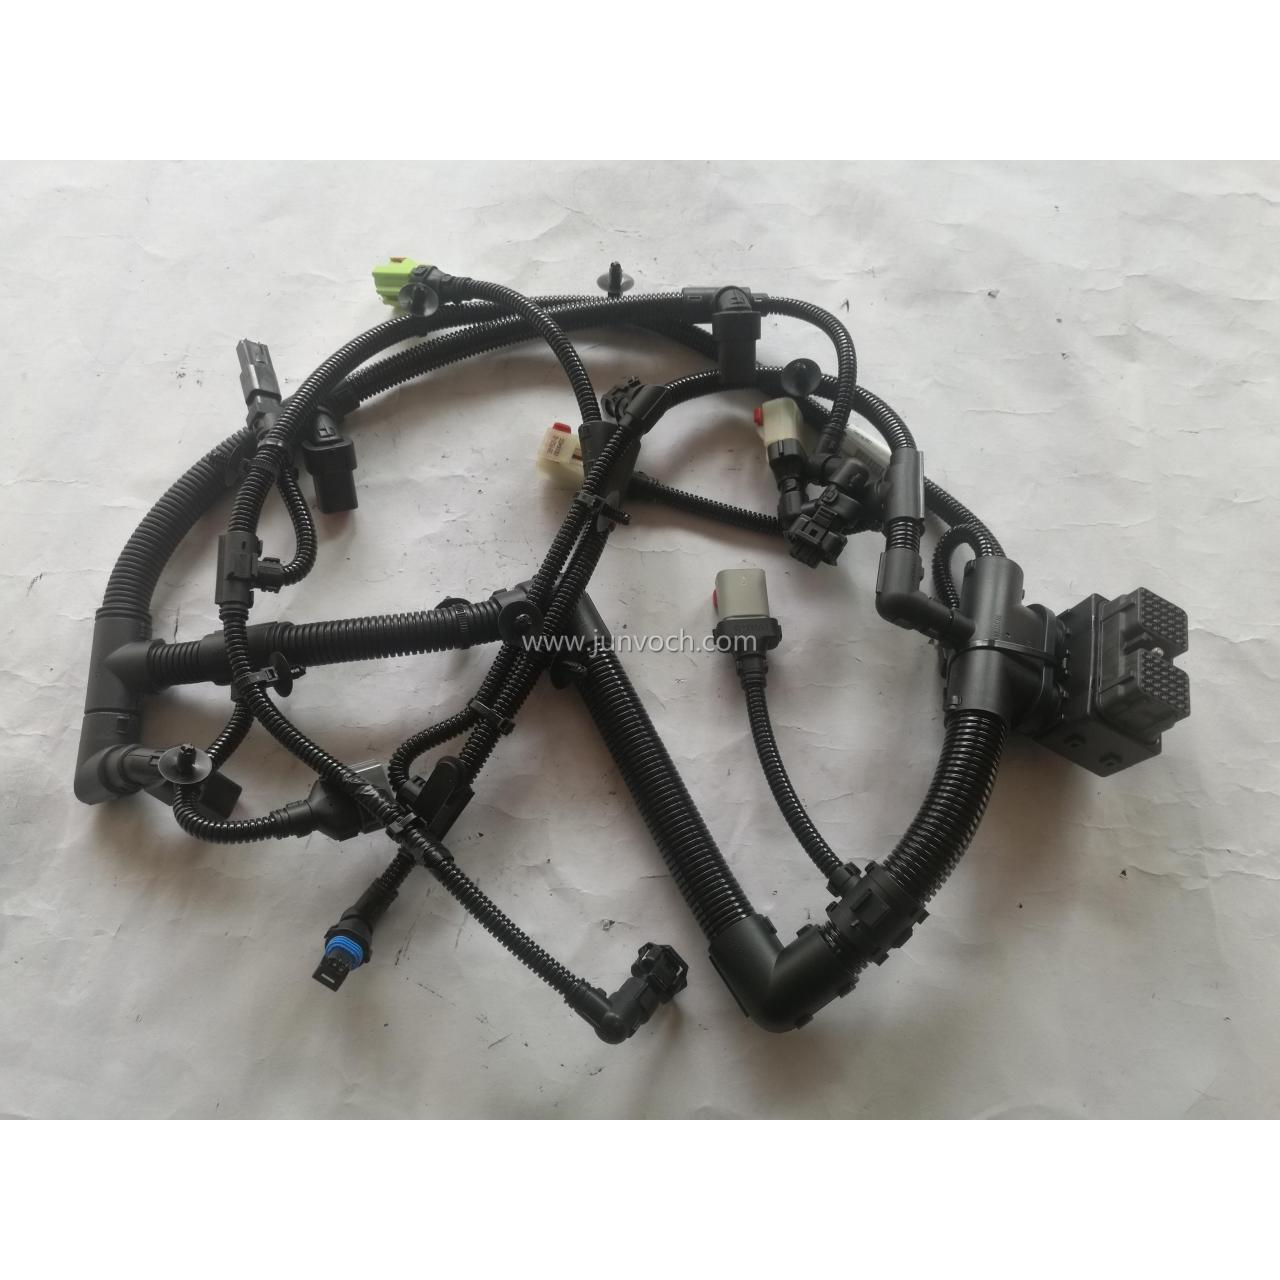 Quality Cummins Engine Assy Cummins Isf2.8/3.8 Wiring Harness 5367725 for sale